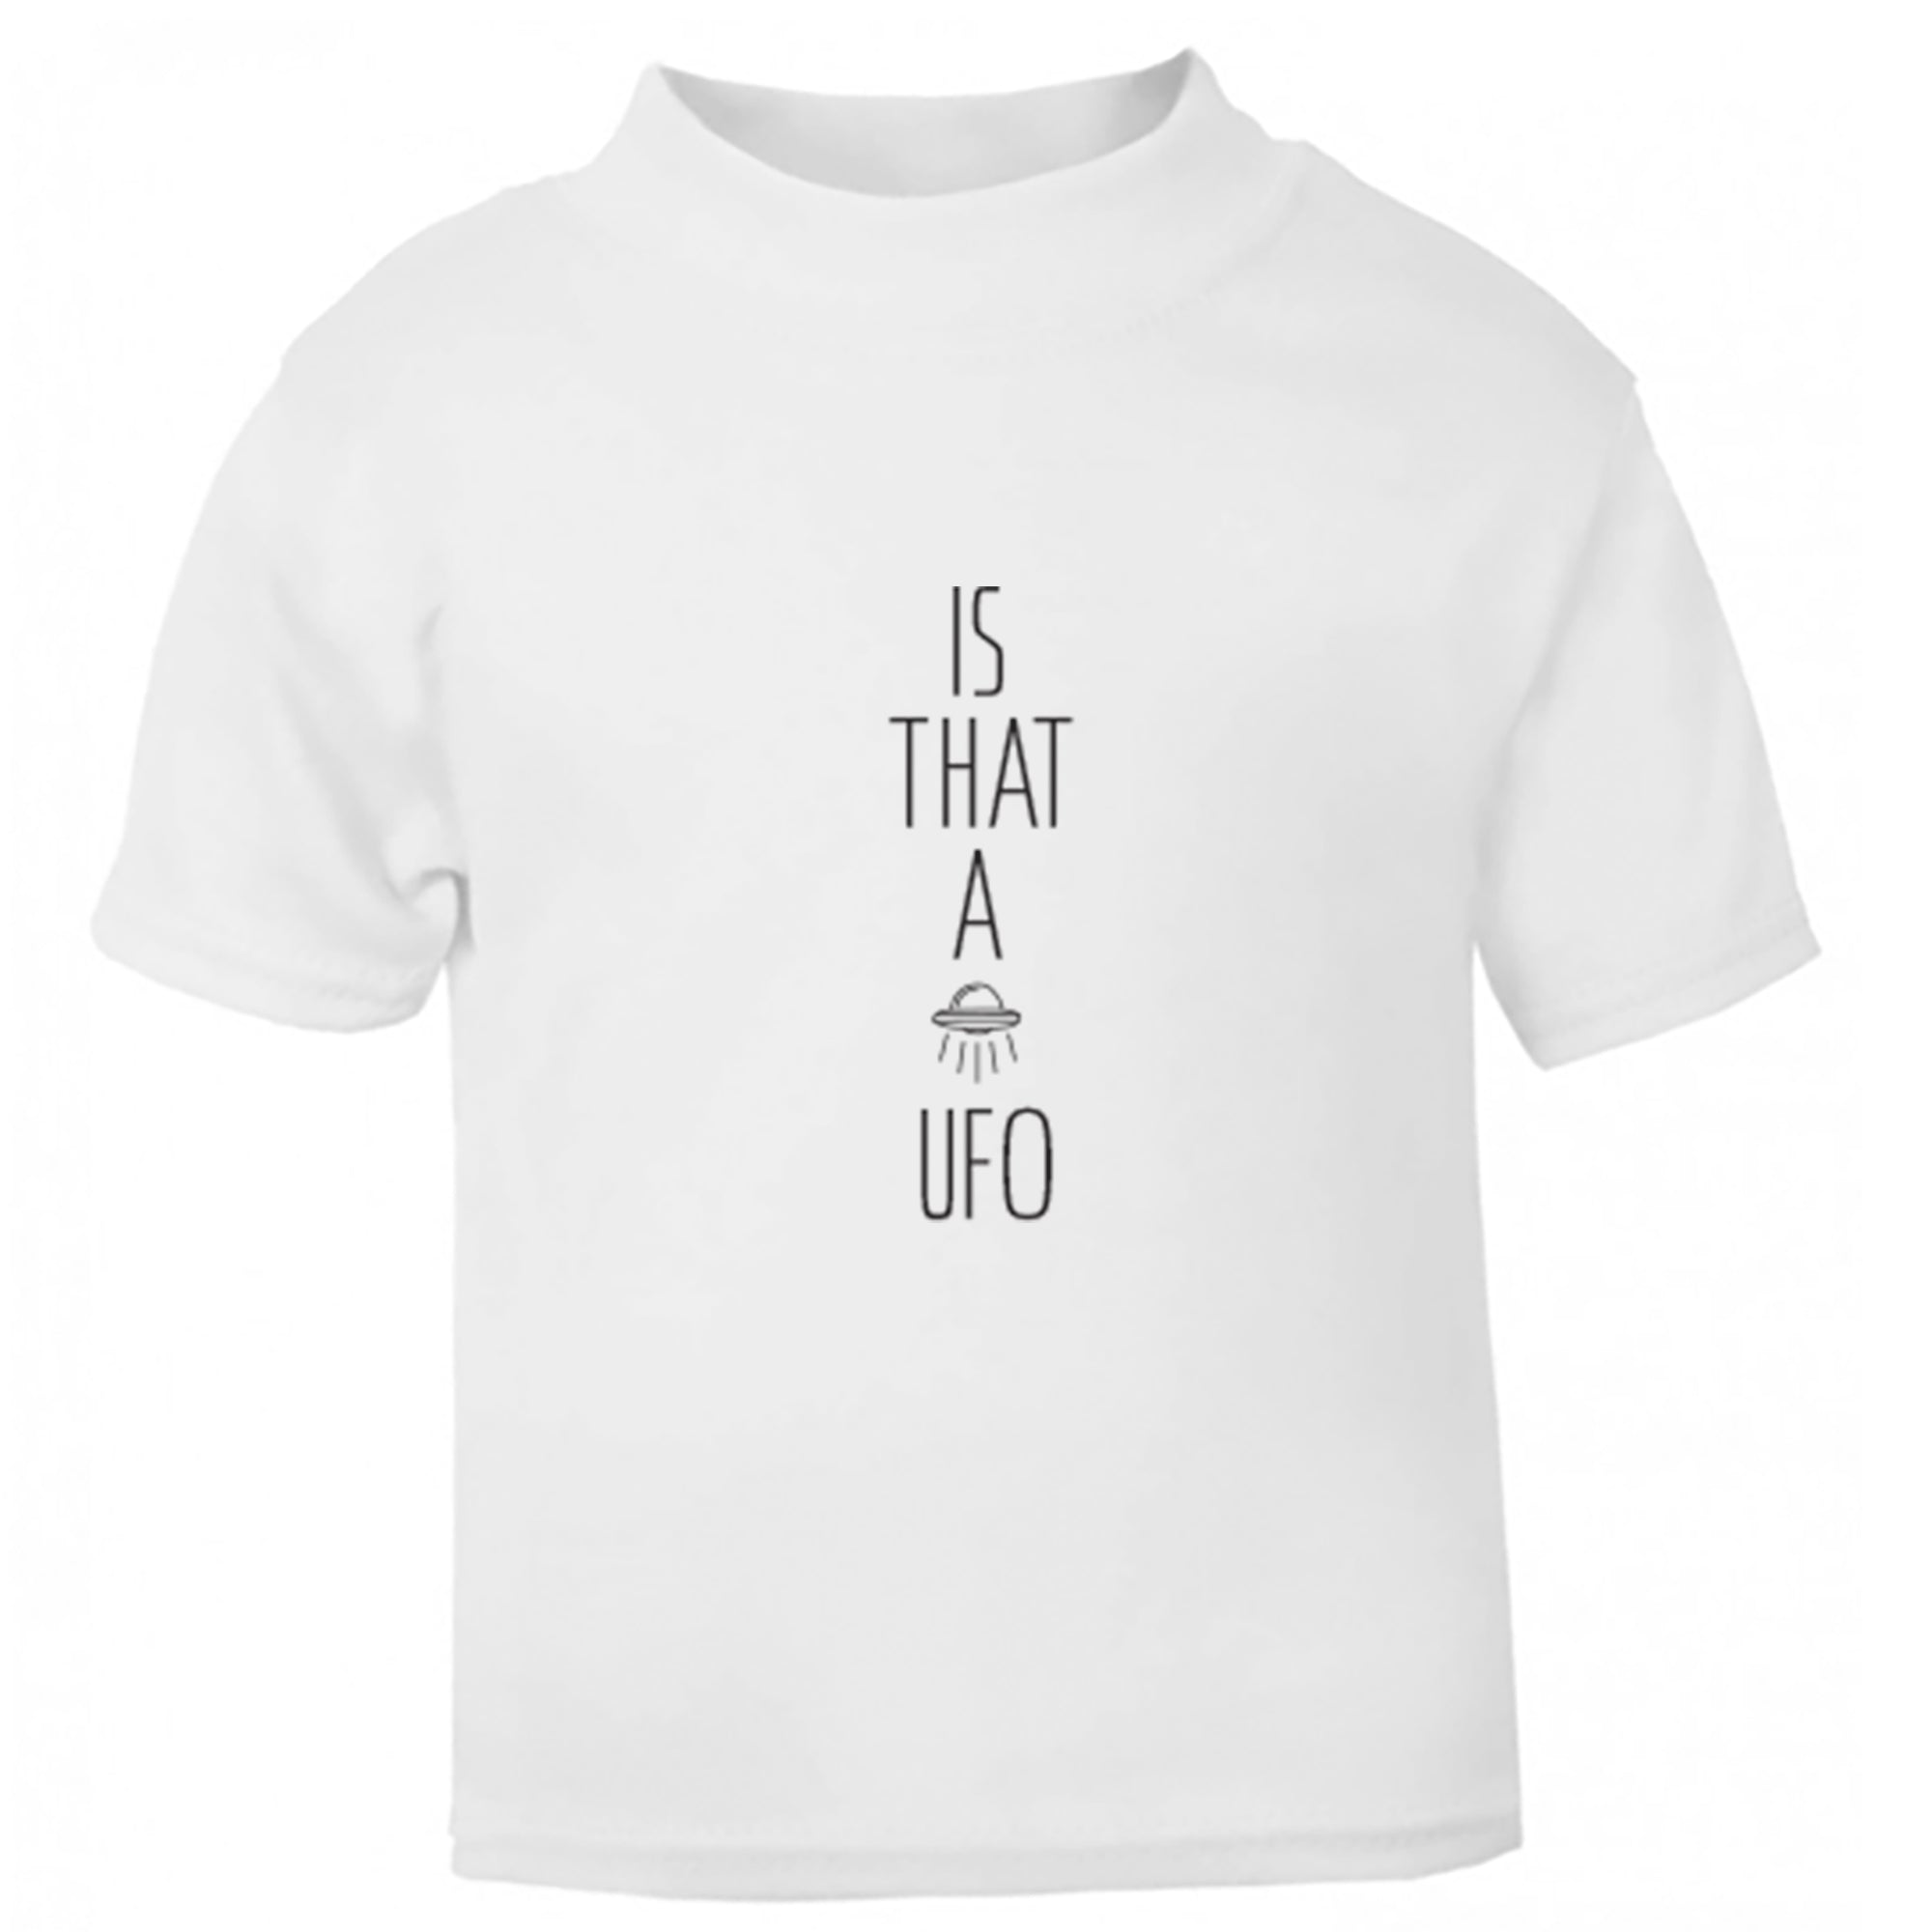 Is That A UFO? Childrens Ages 3/4-12/14 Unisex Fit T-Shirt S0002 - Illustrated Identity Ltd.